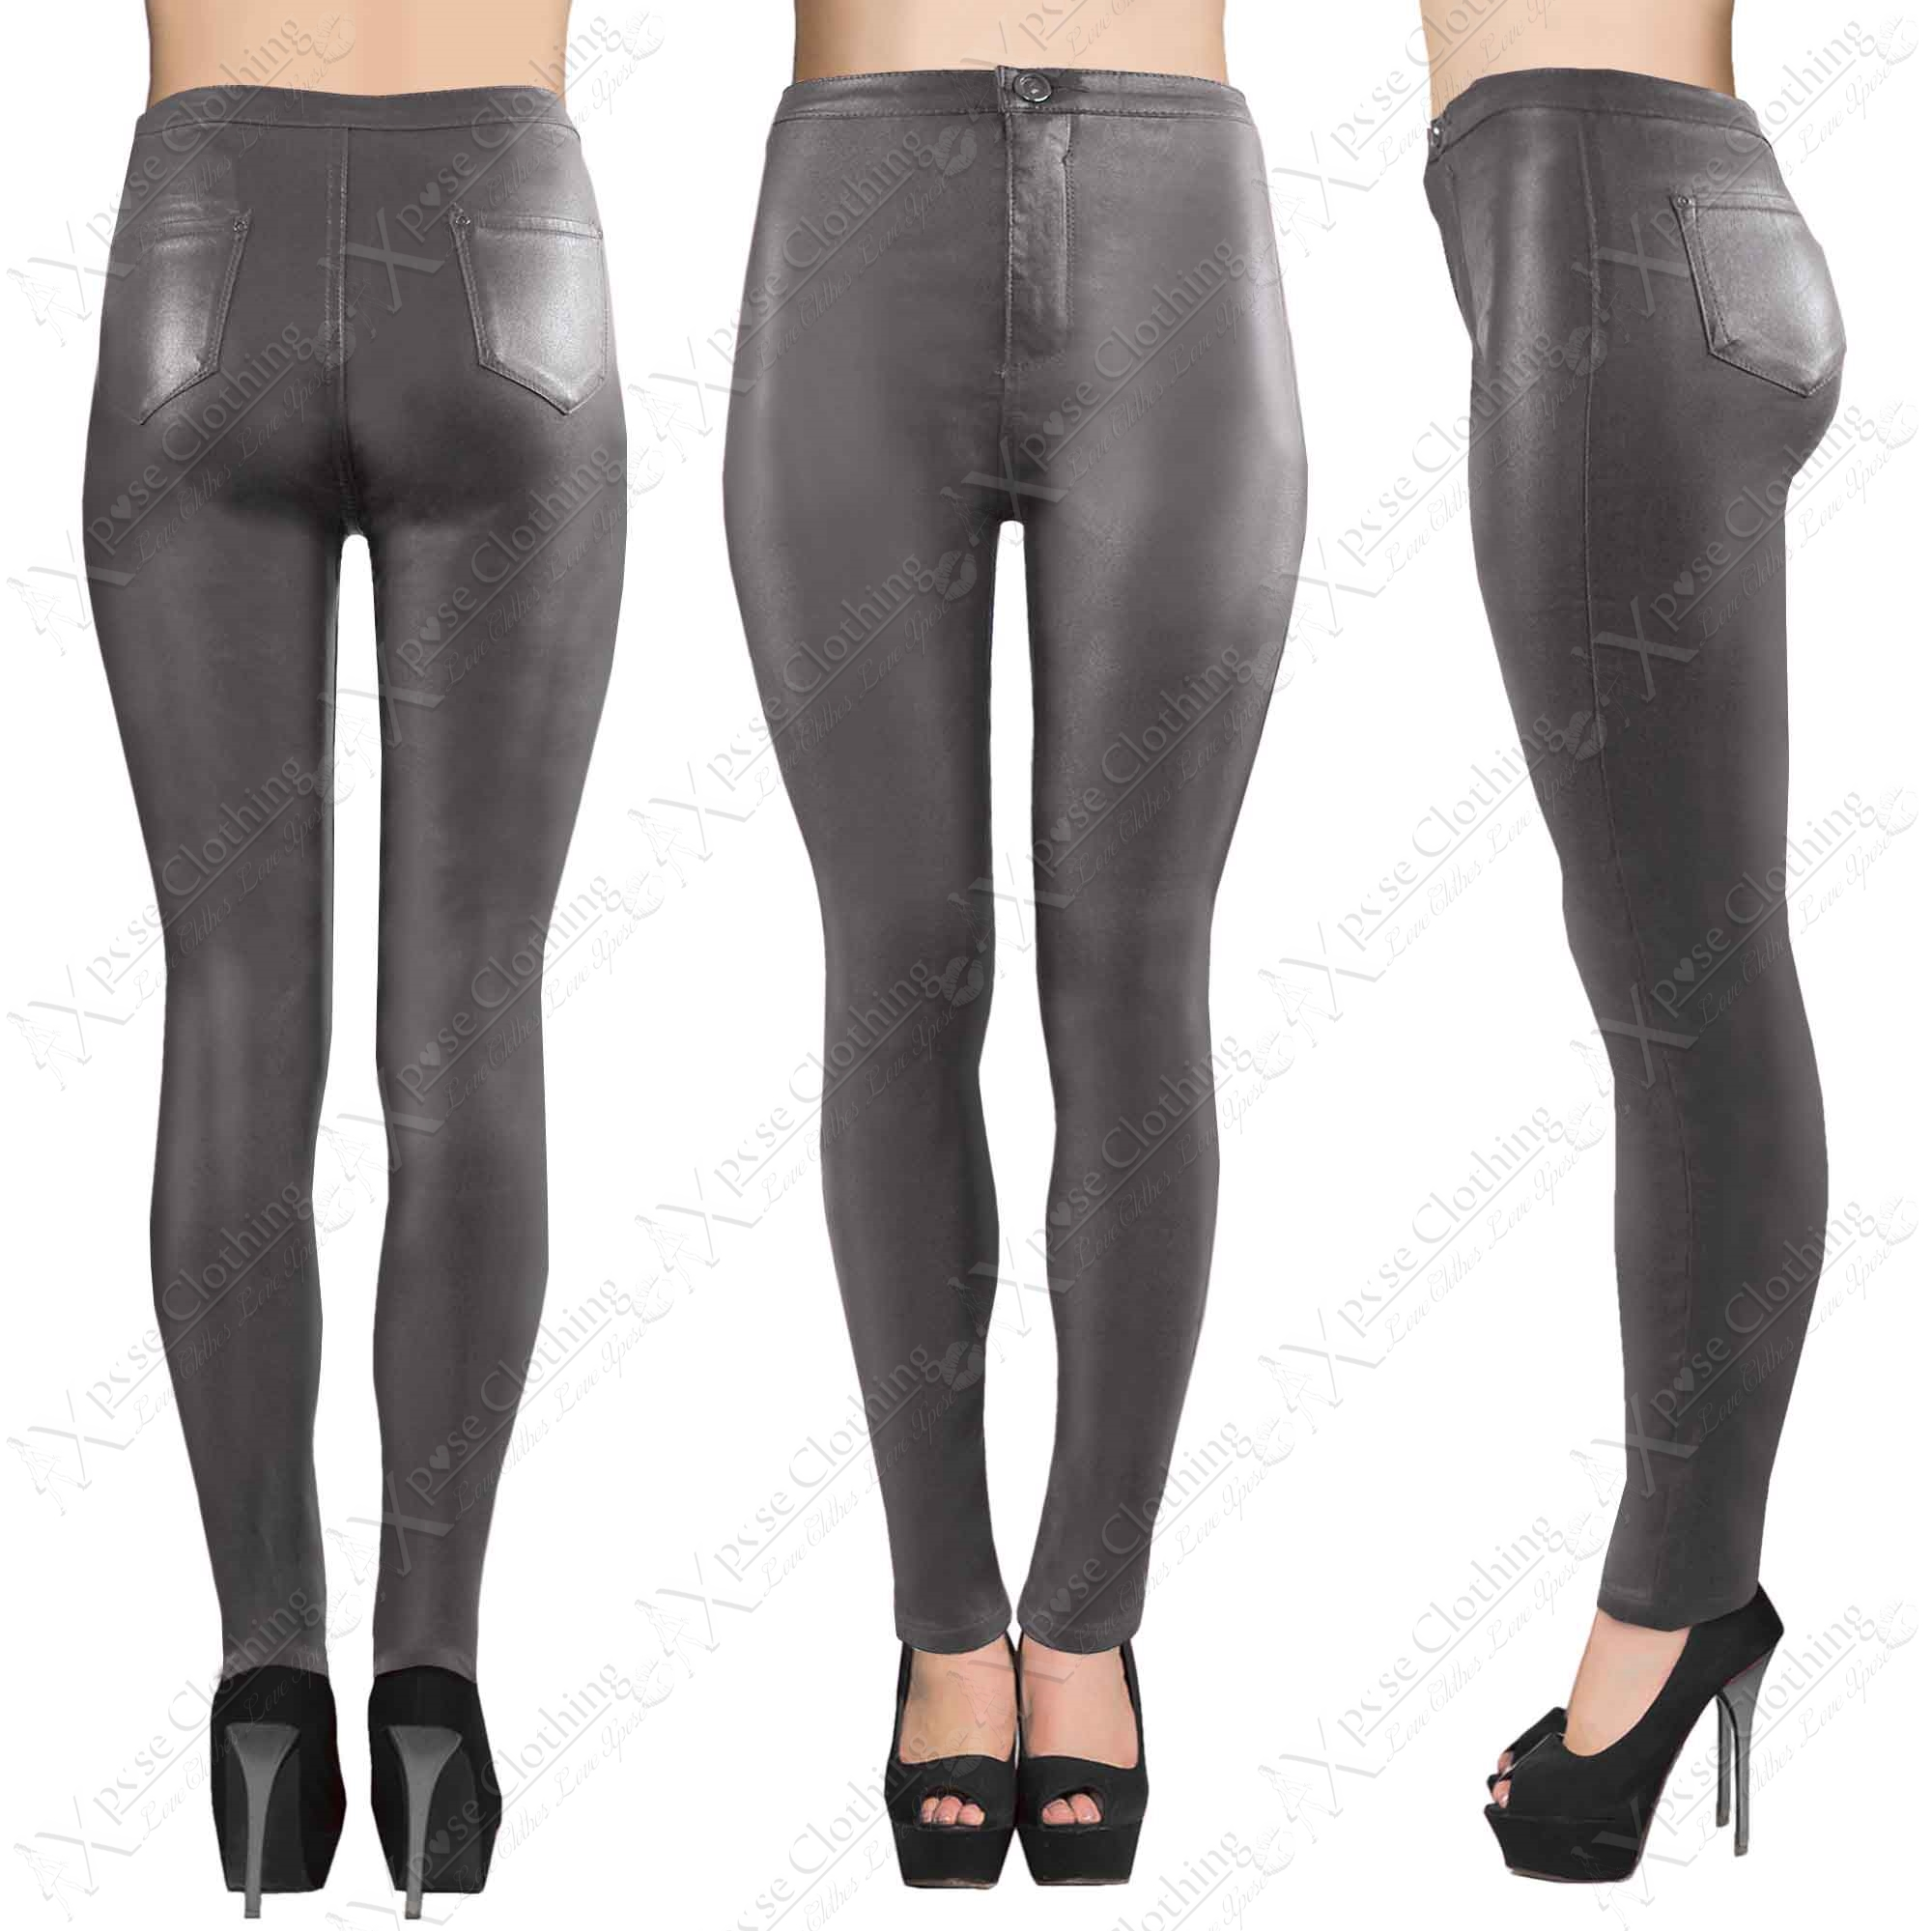 LADIES HIGH WAISTED GREY PU TUBE JEANS LEATHER LOOK SKINNY FIT ...